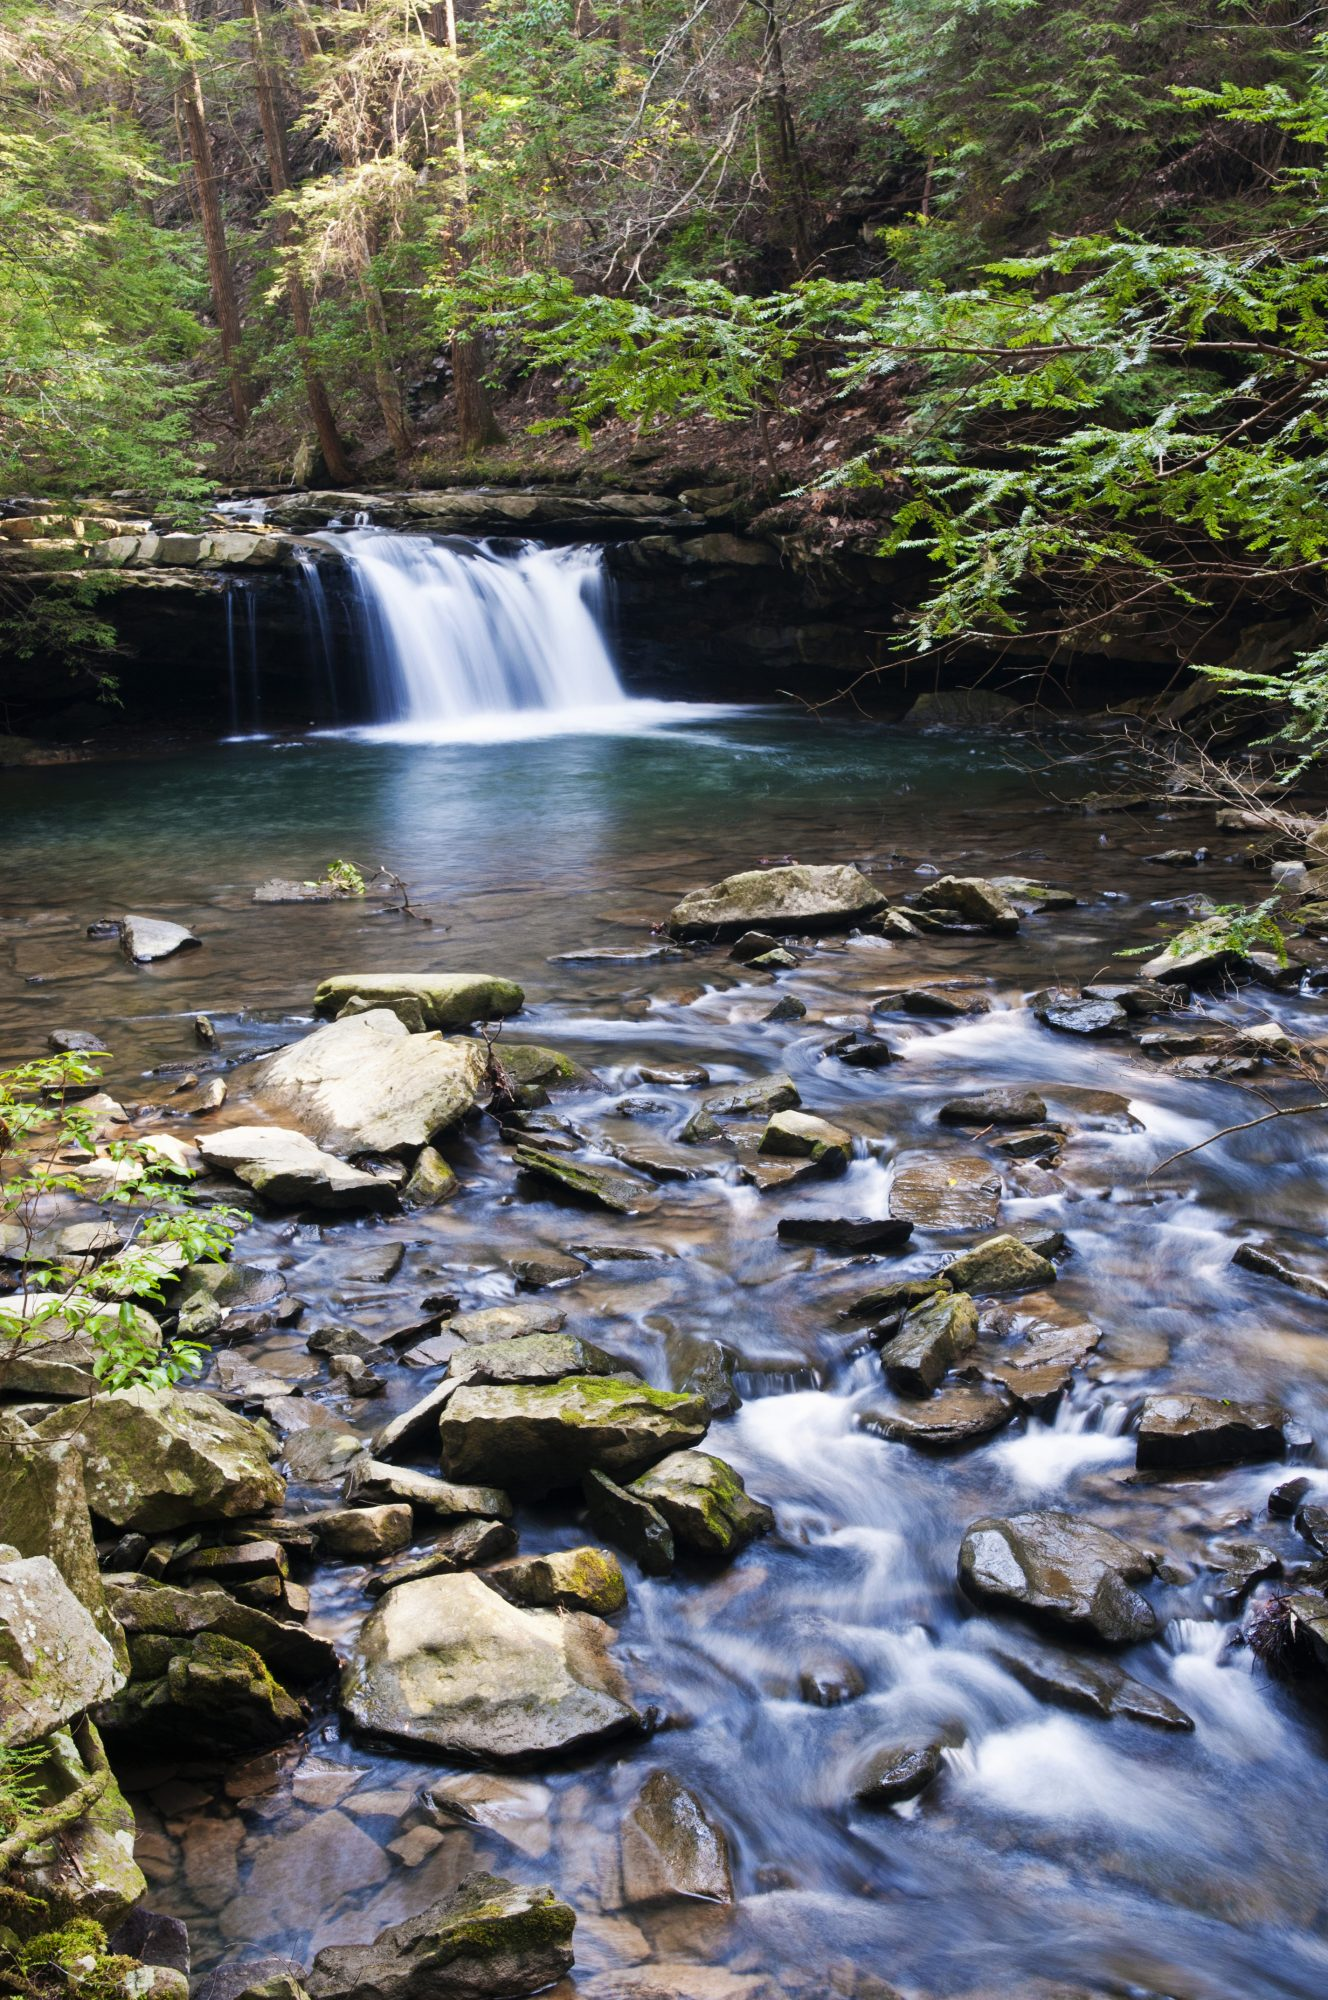 South Cumberland State Park in Monteagle, TN